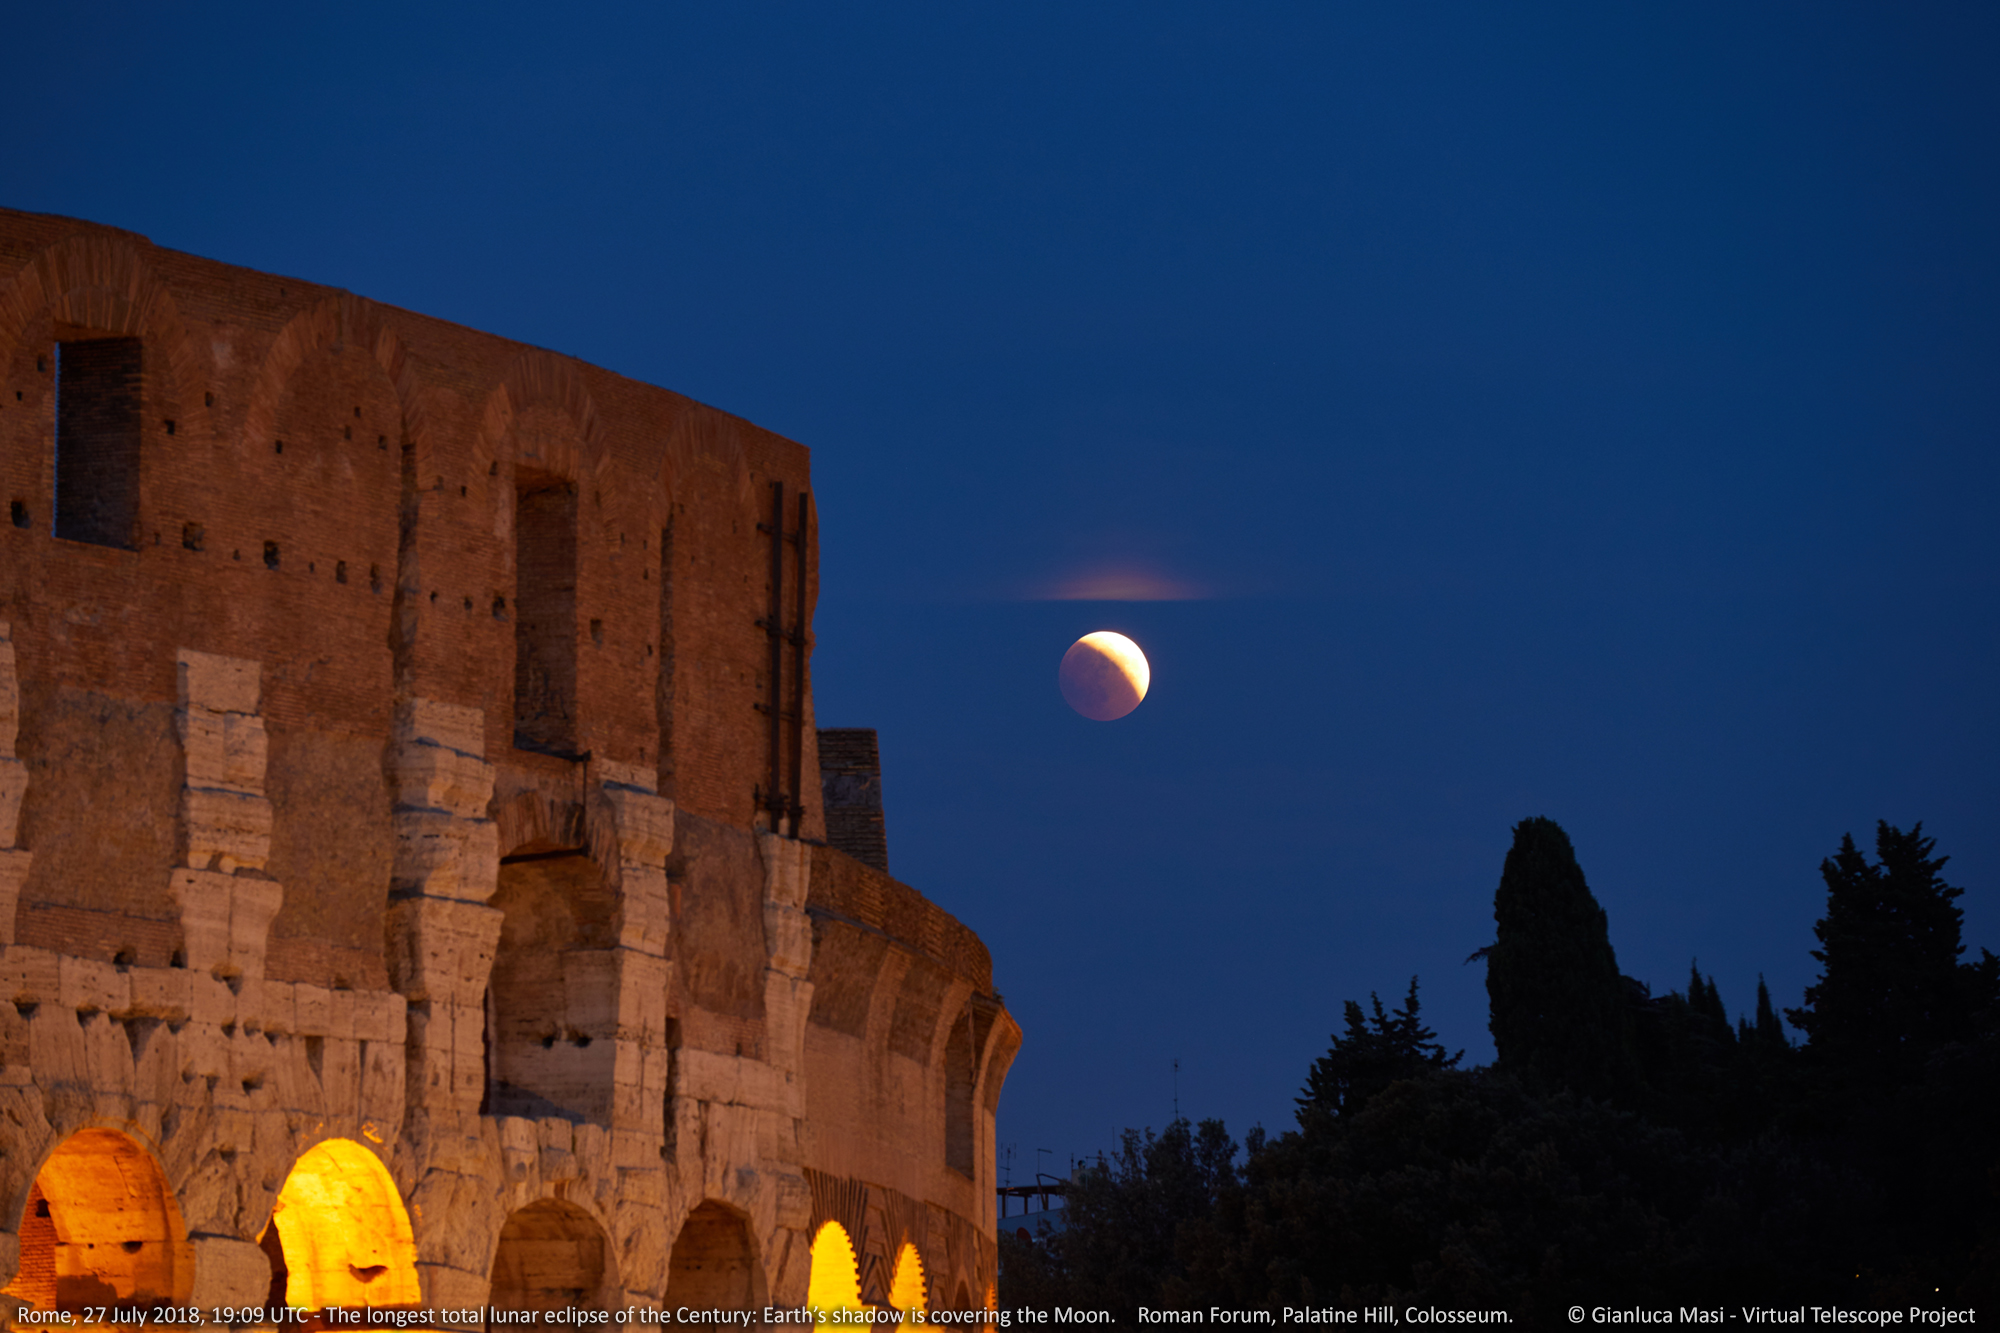 The partially eclipsed Moon opened the show, appearing beside the Colosseum.